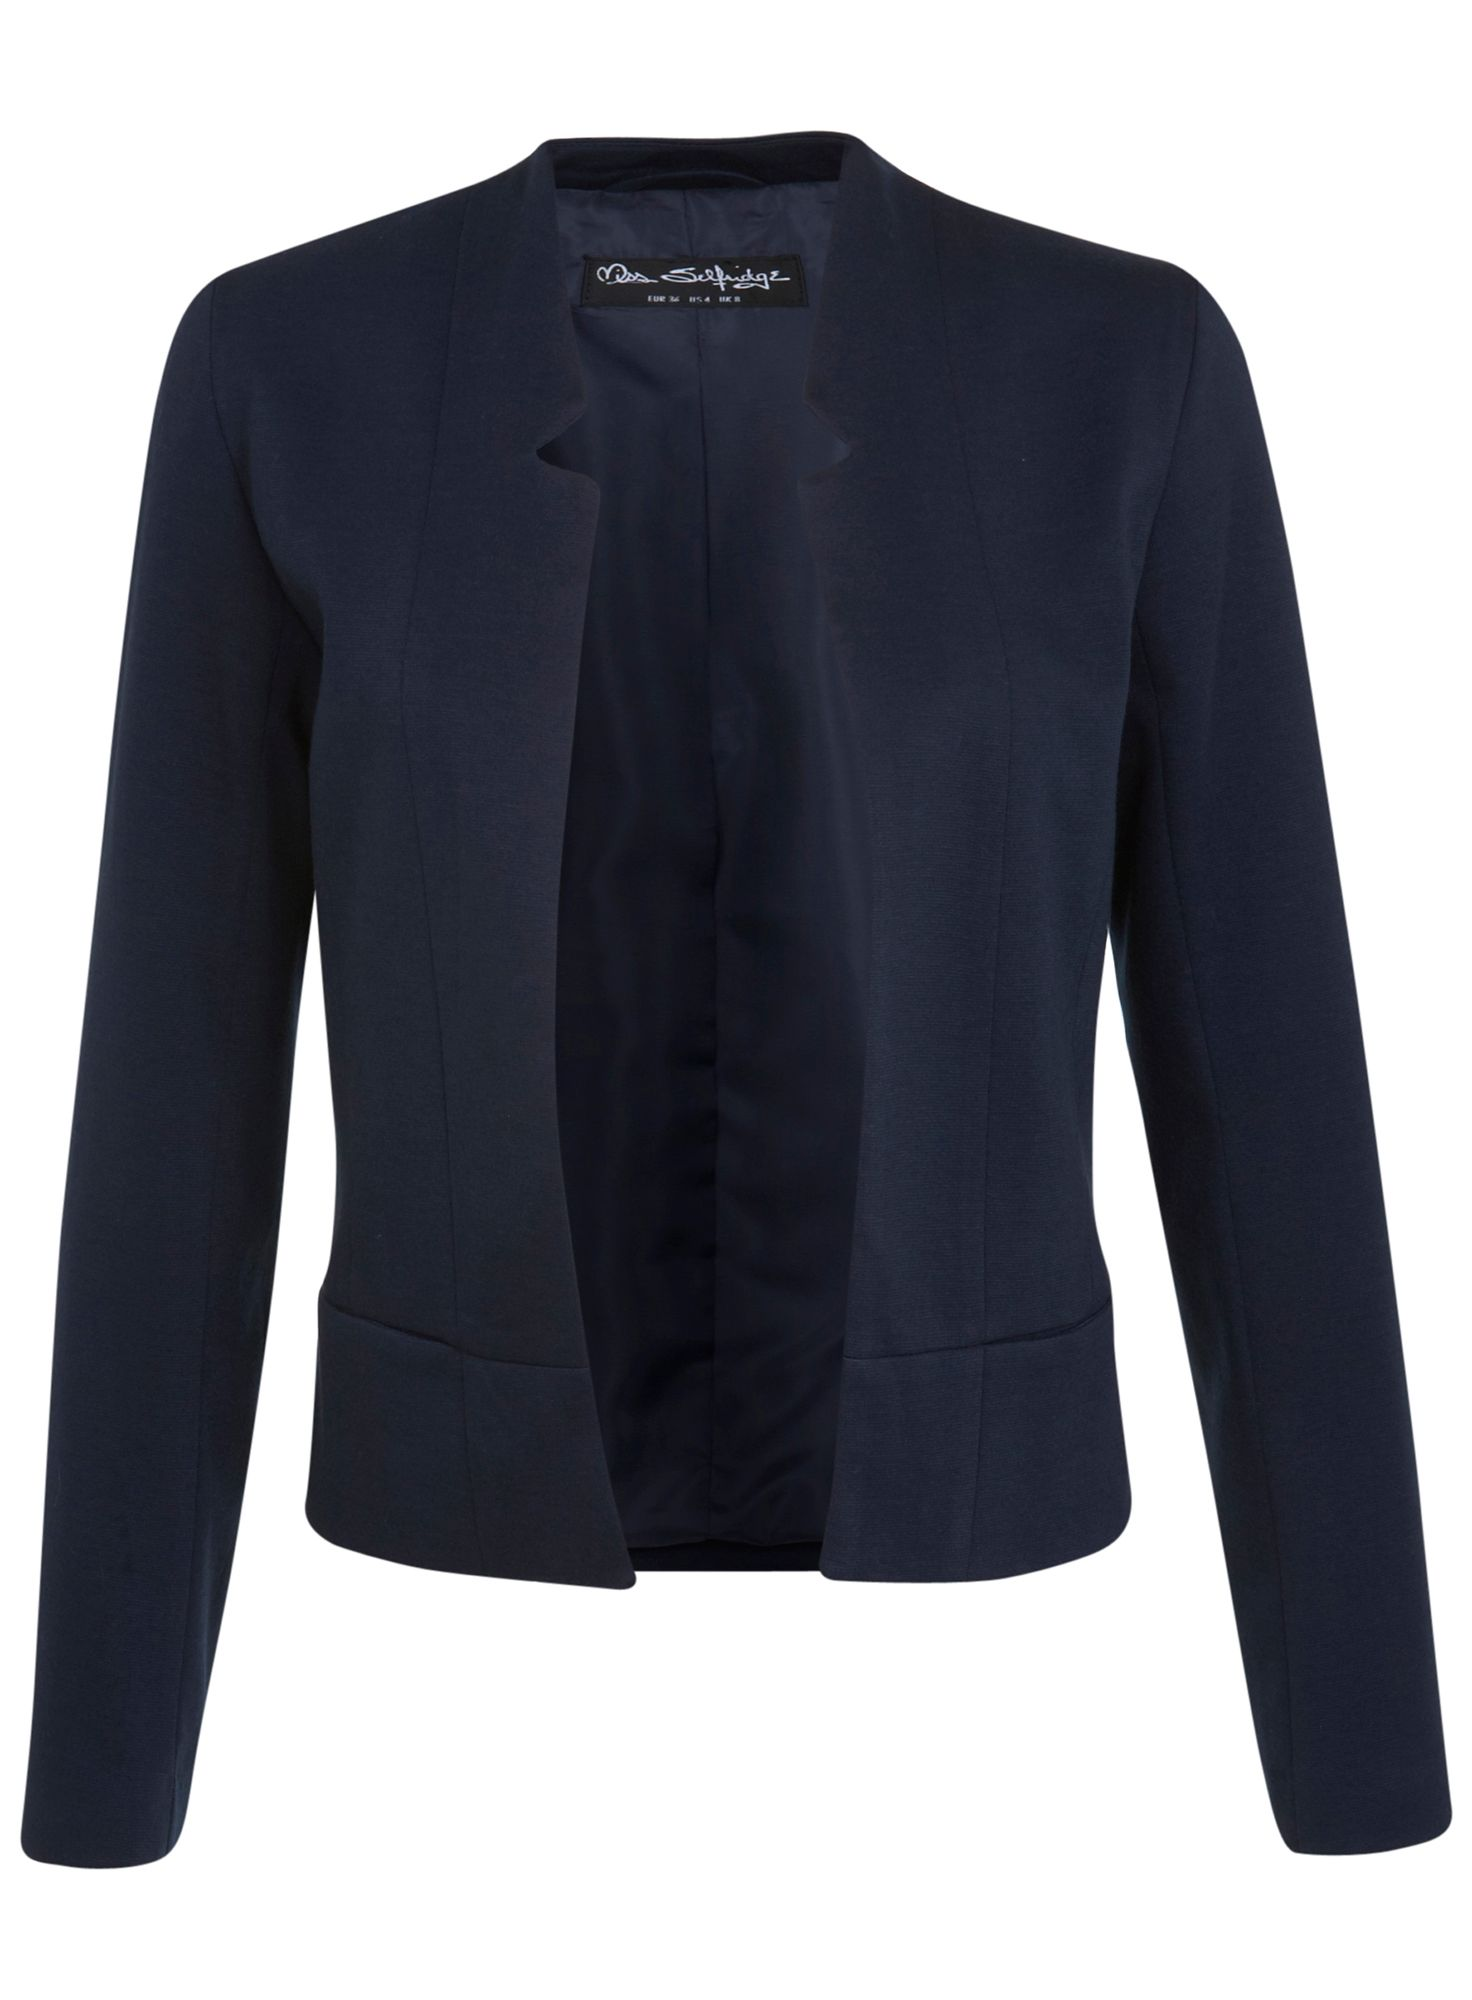 Notch ponte jacket